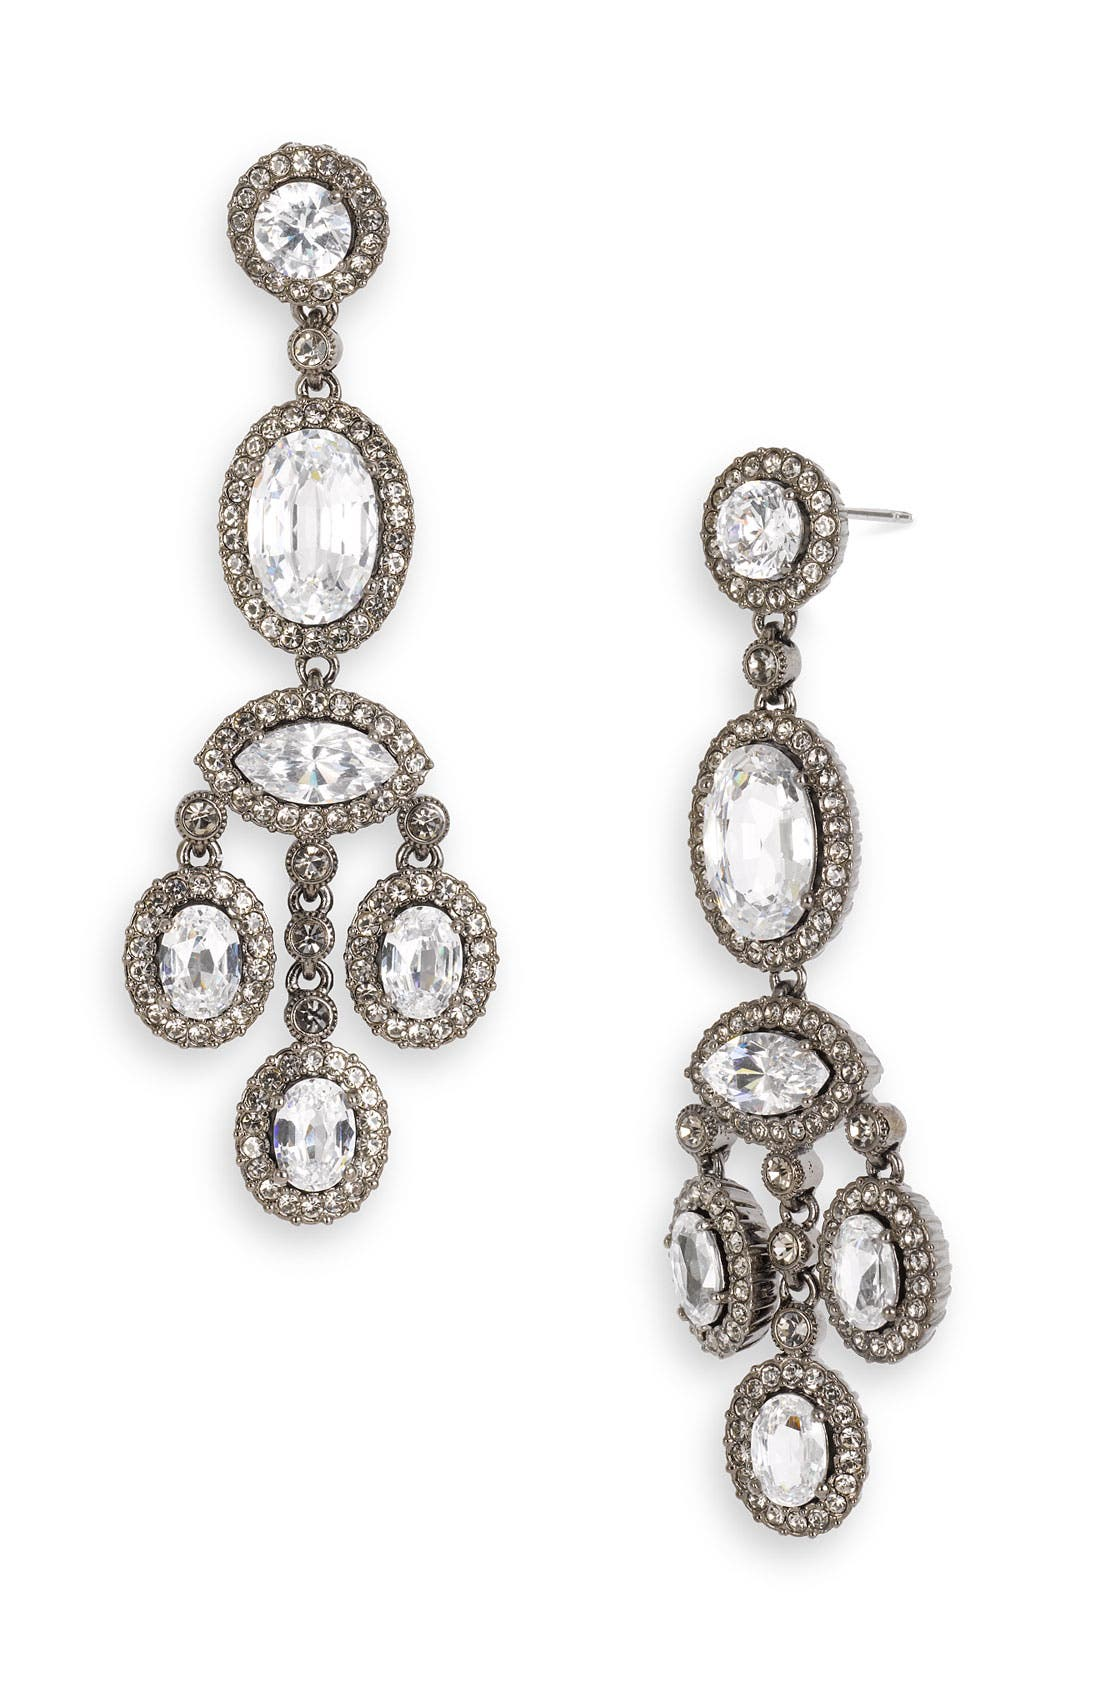 Main Image - Nadri Framed Cubic Zirconia Chandelier Earrings